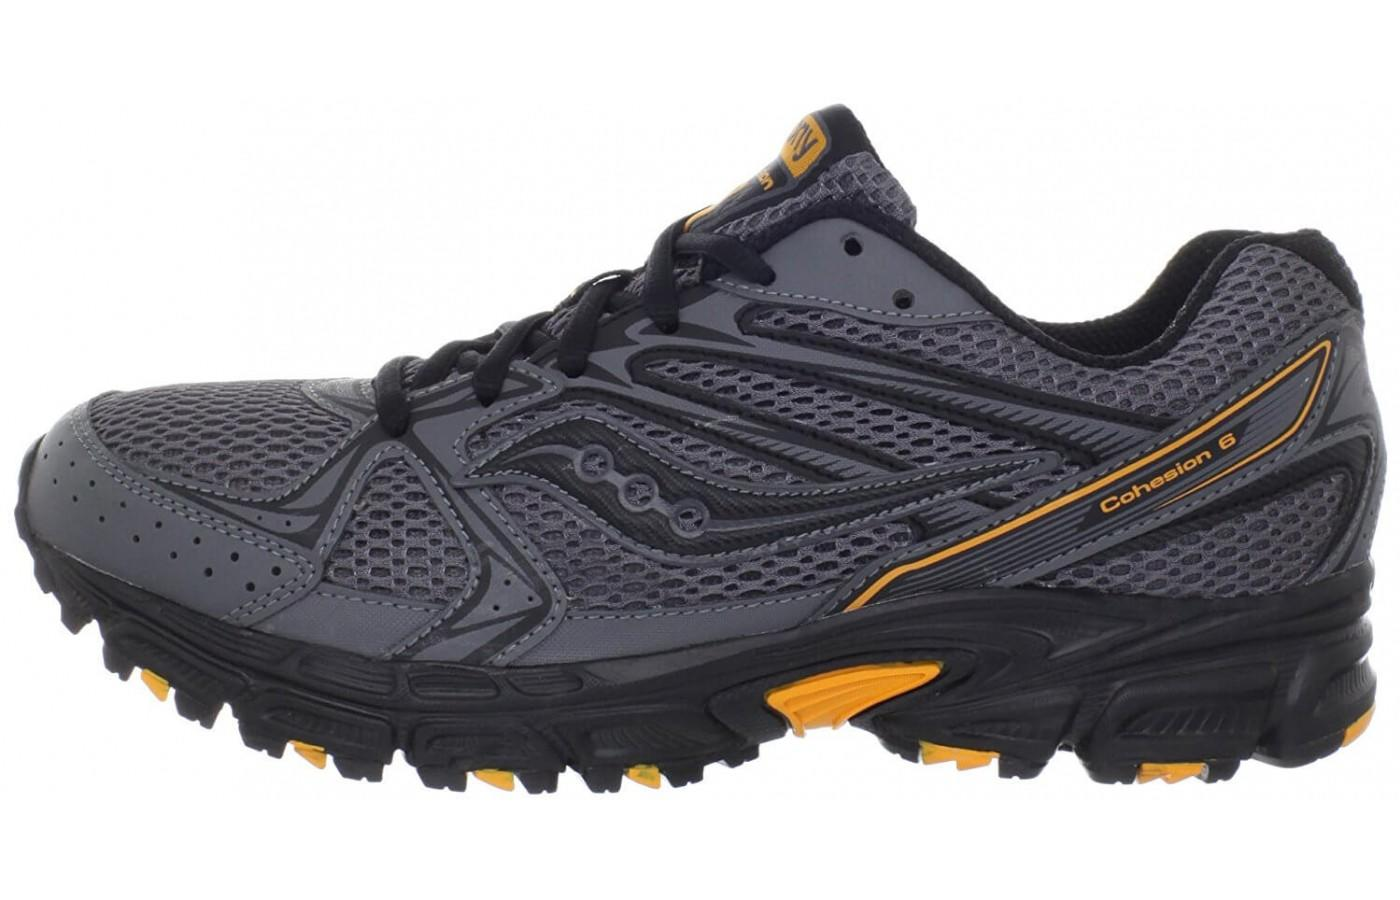 The classic black, gray and orange give this a classic trail shoe look.